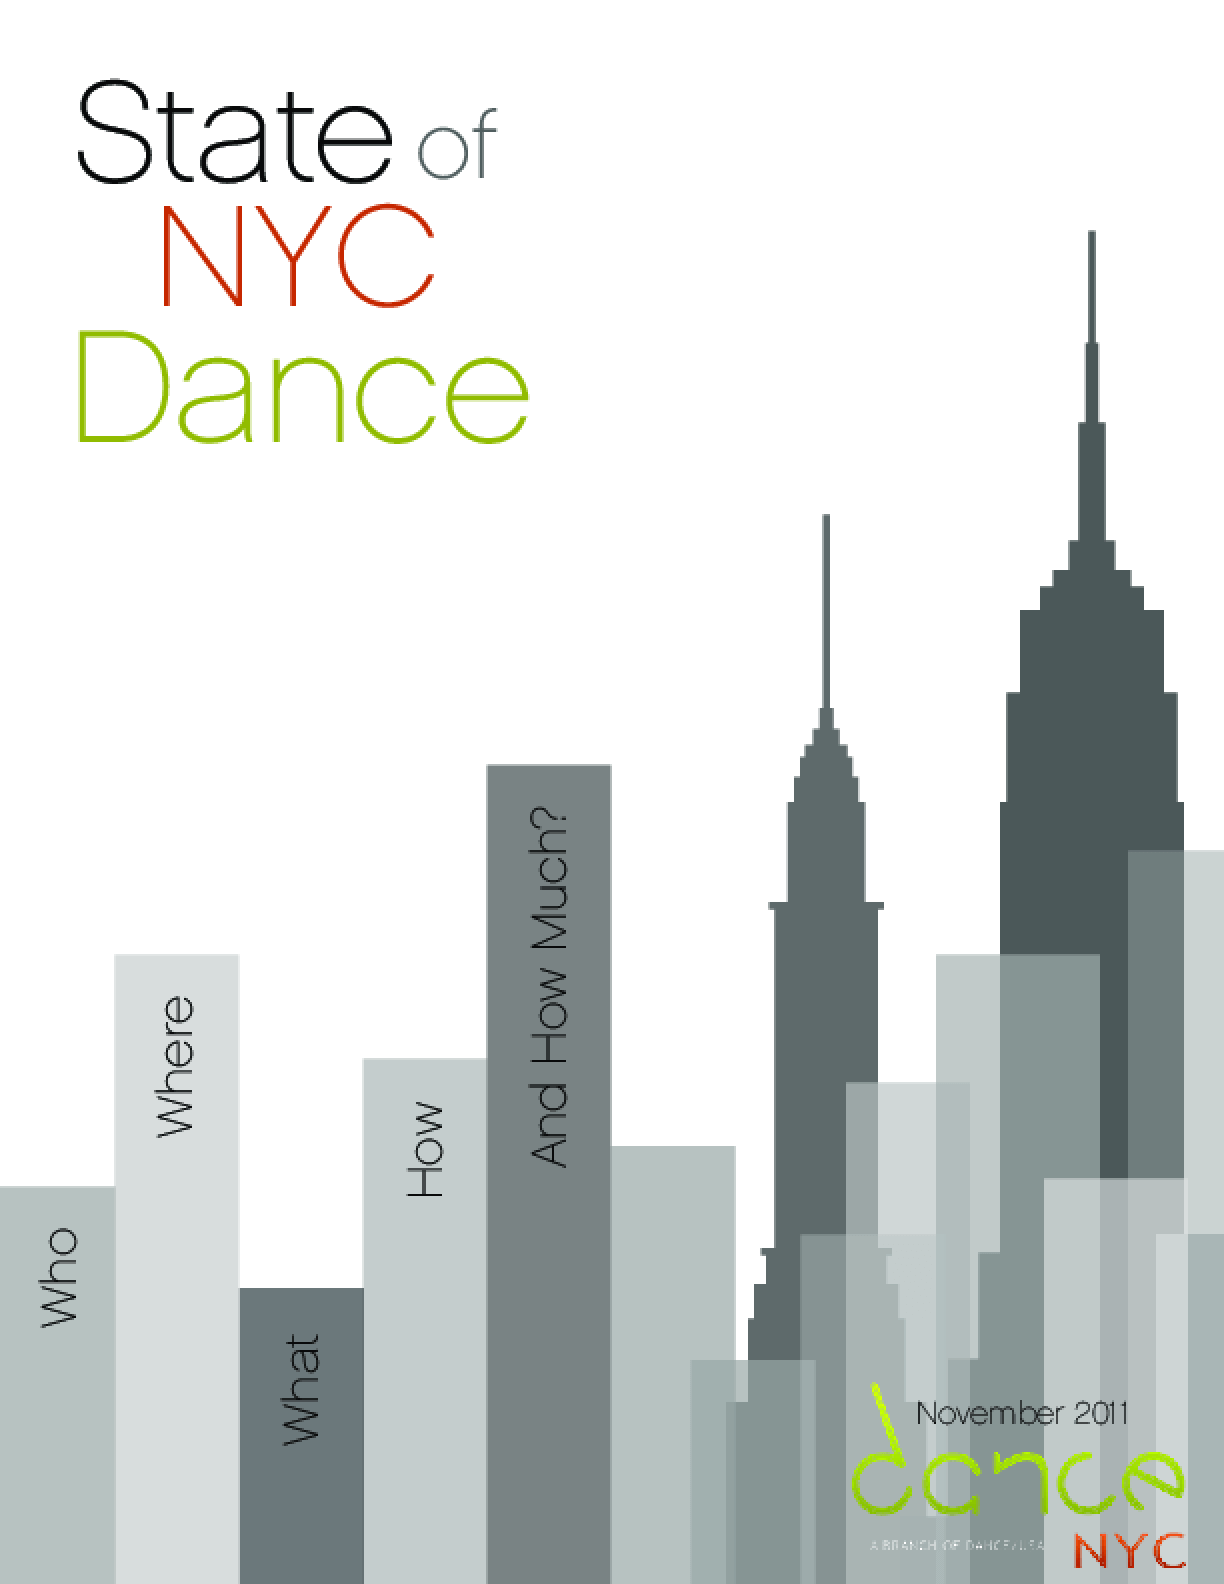 State of NYC Dance